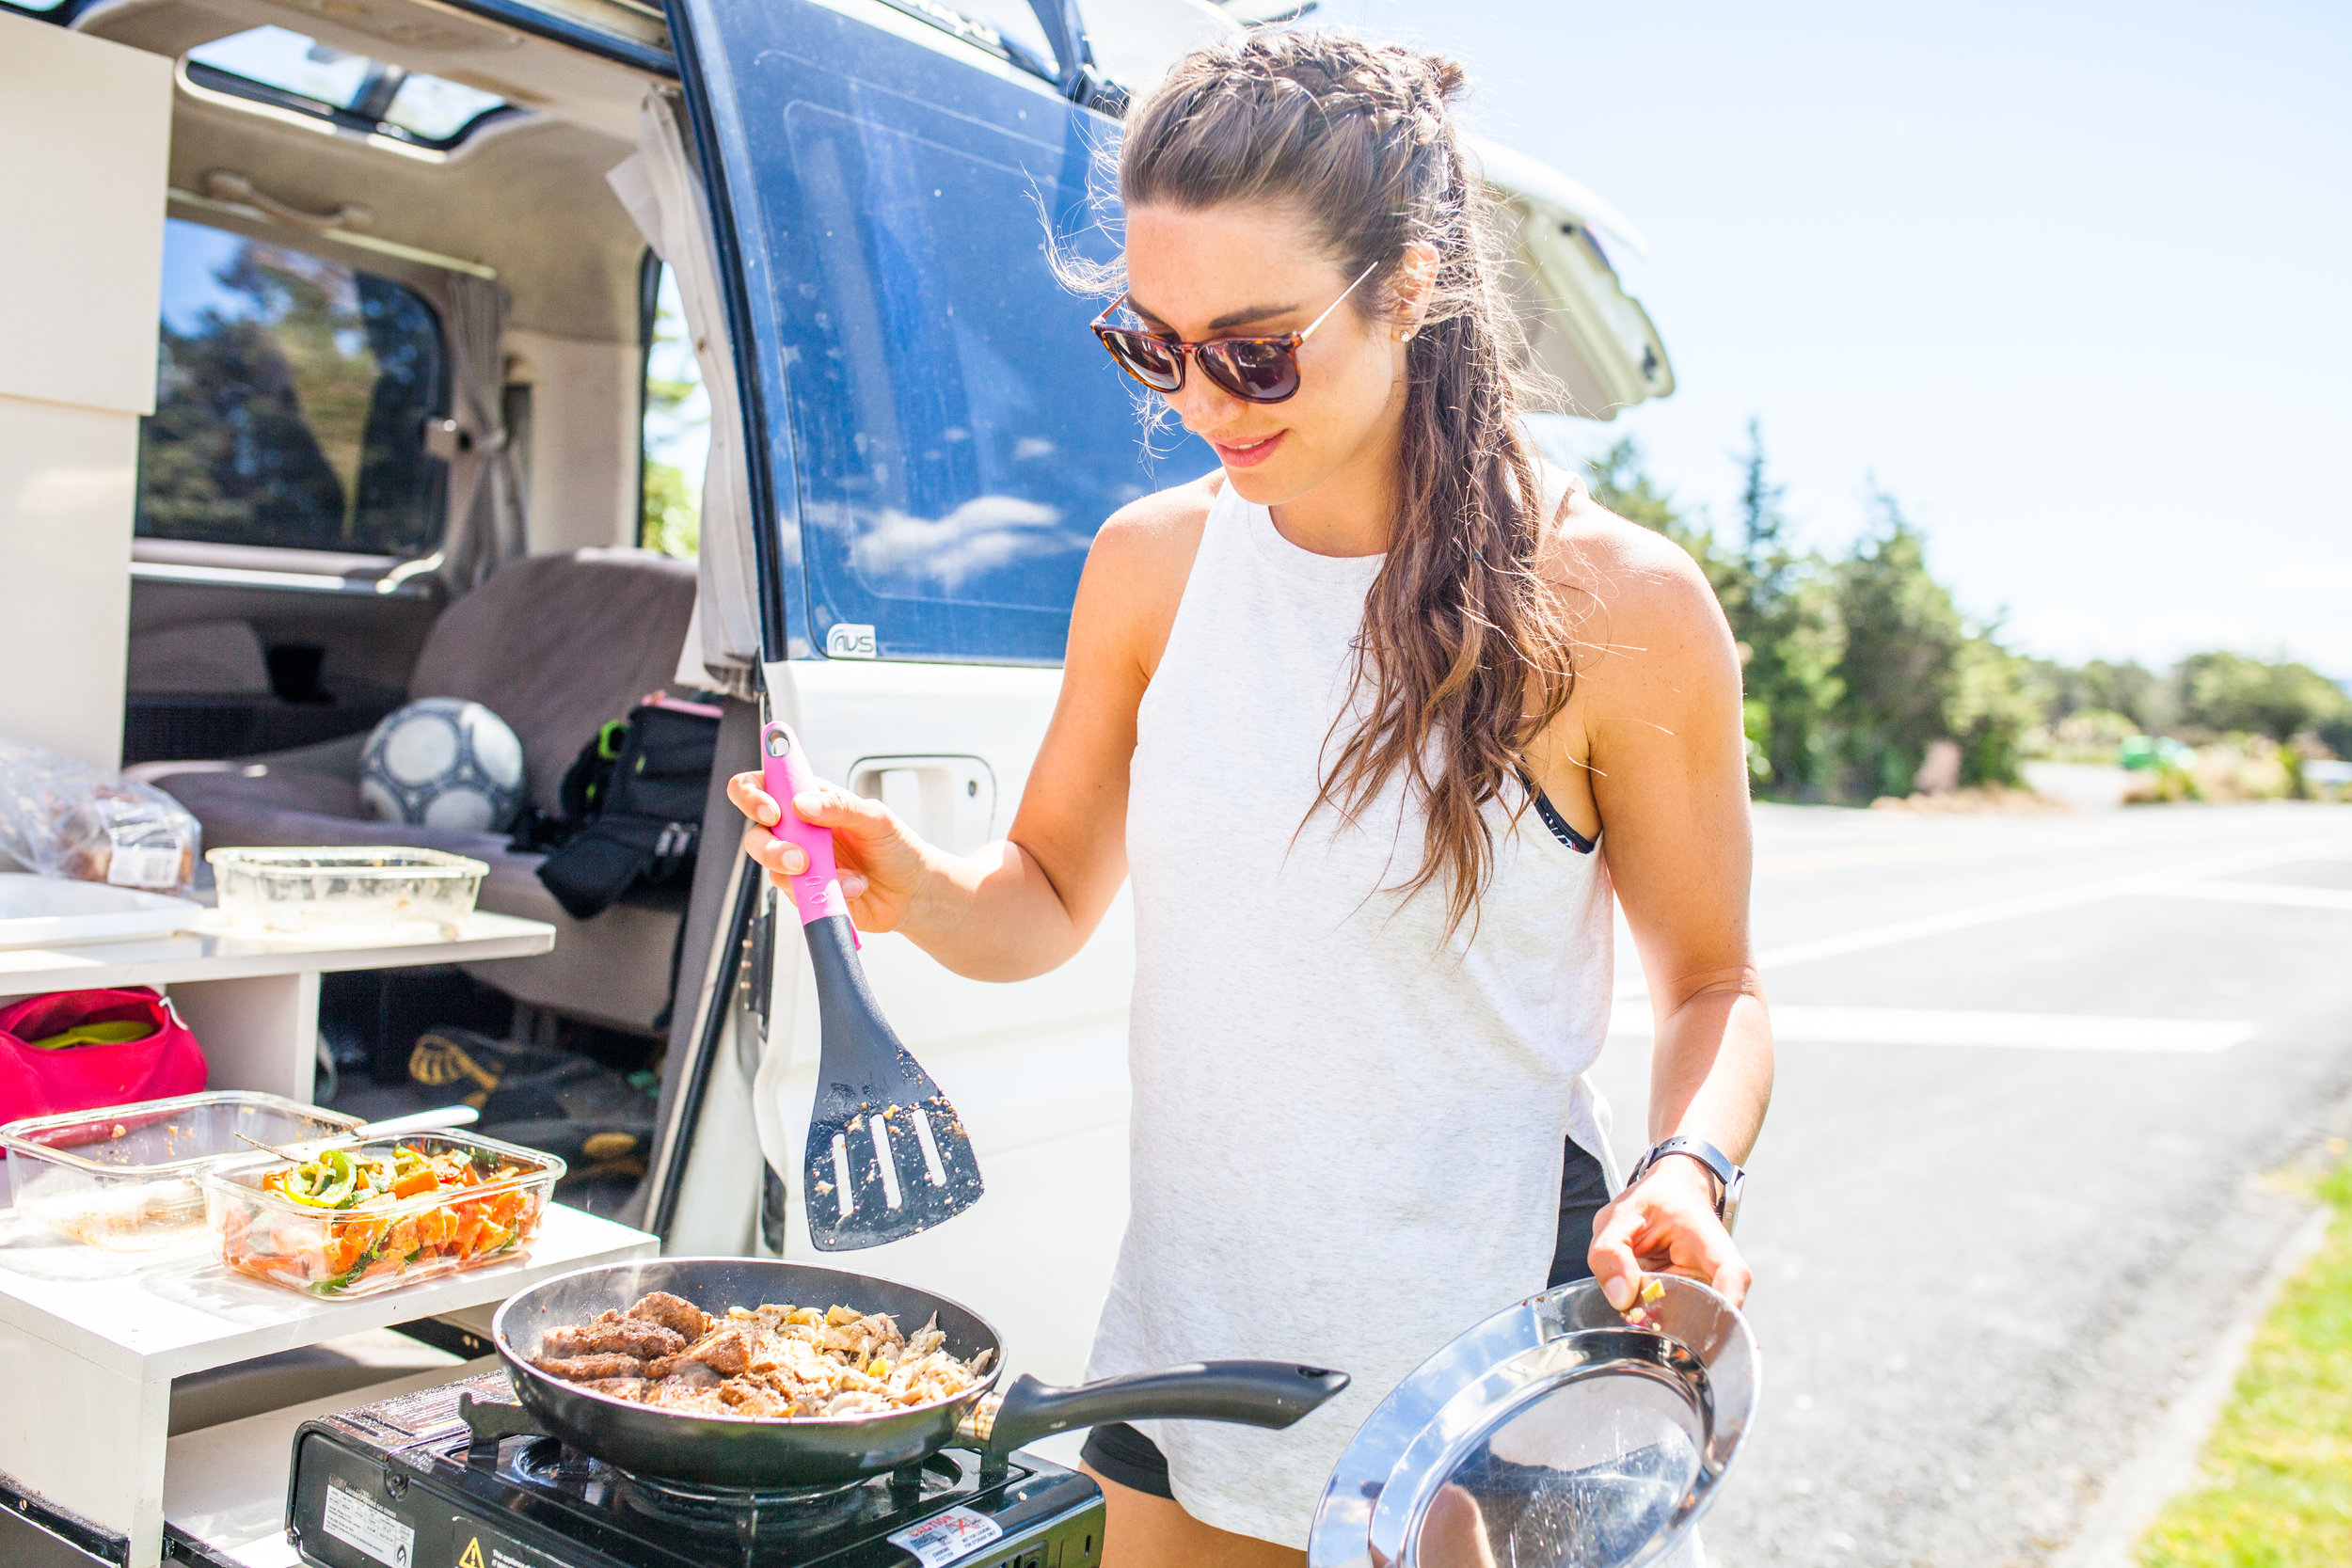 Protein and Veggies - even while camping!